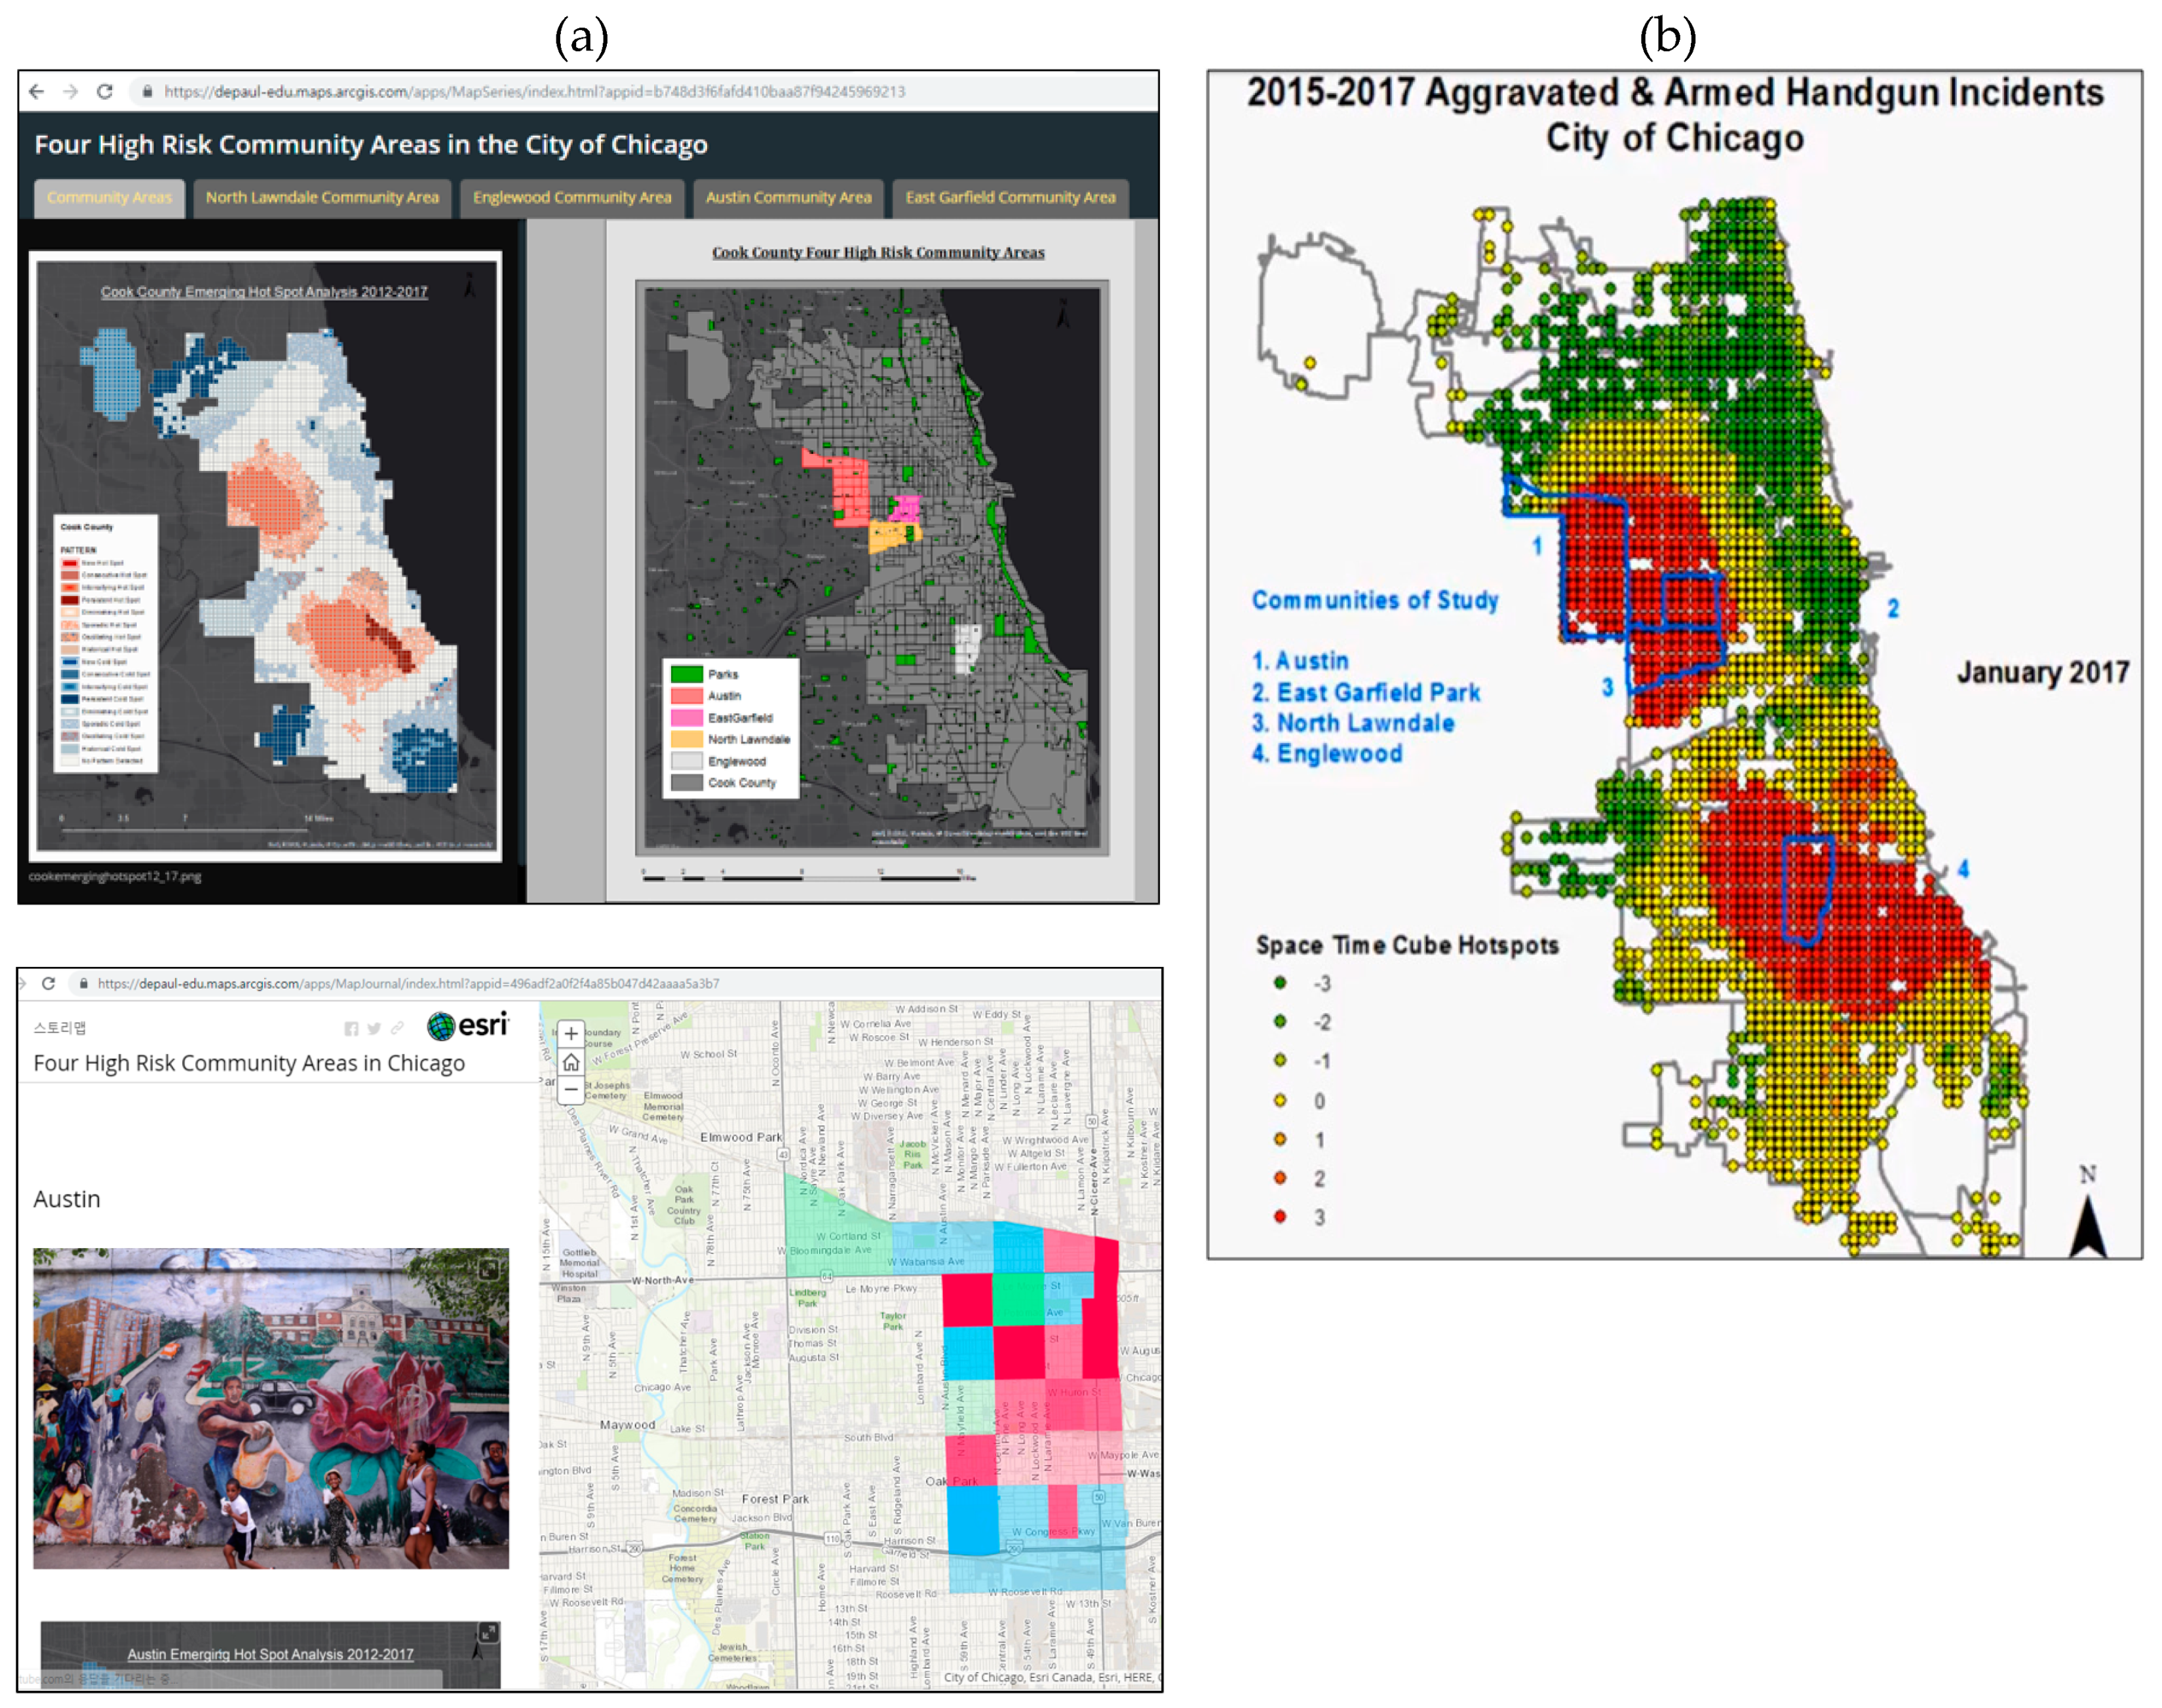 Sustainability | Free Full-Text | GIS Crime Mapping to ... on computerized crime mapping, map crime mapping, historical gis, gis and hydrology, crime prevention, crime analysis, gis crime-fighting, traditional knowledge gis, uniform crime reports, routine activity theory, geographic information system, police crime mapping, white-collar crime, remote sensing application, benefits of crime mapping, geographic profiling, fixing broken windows, gis applications,